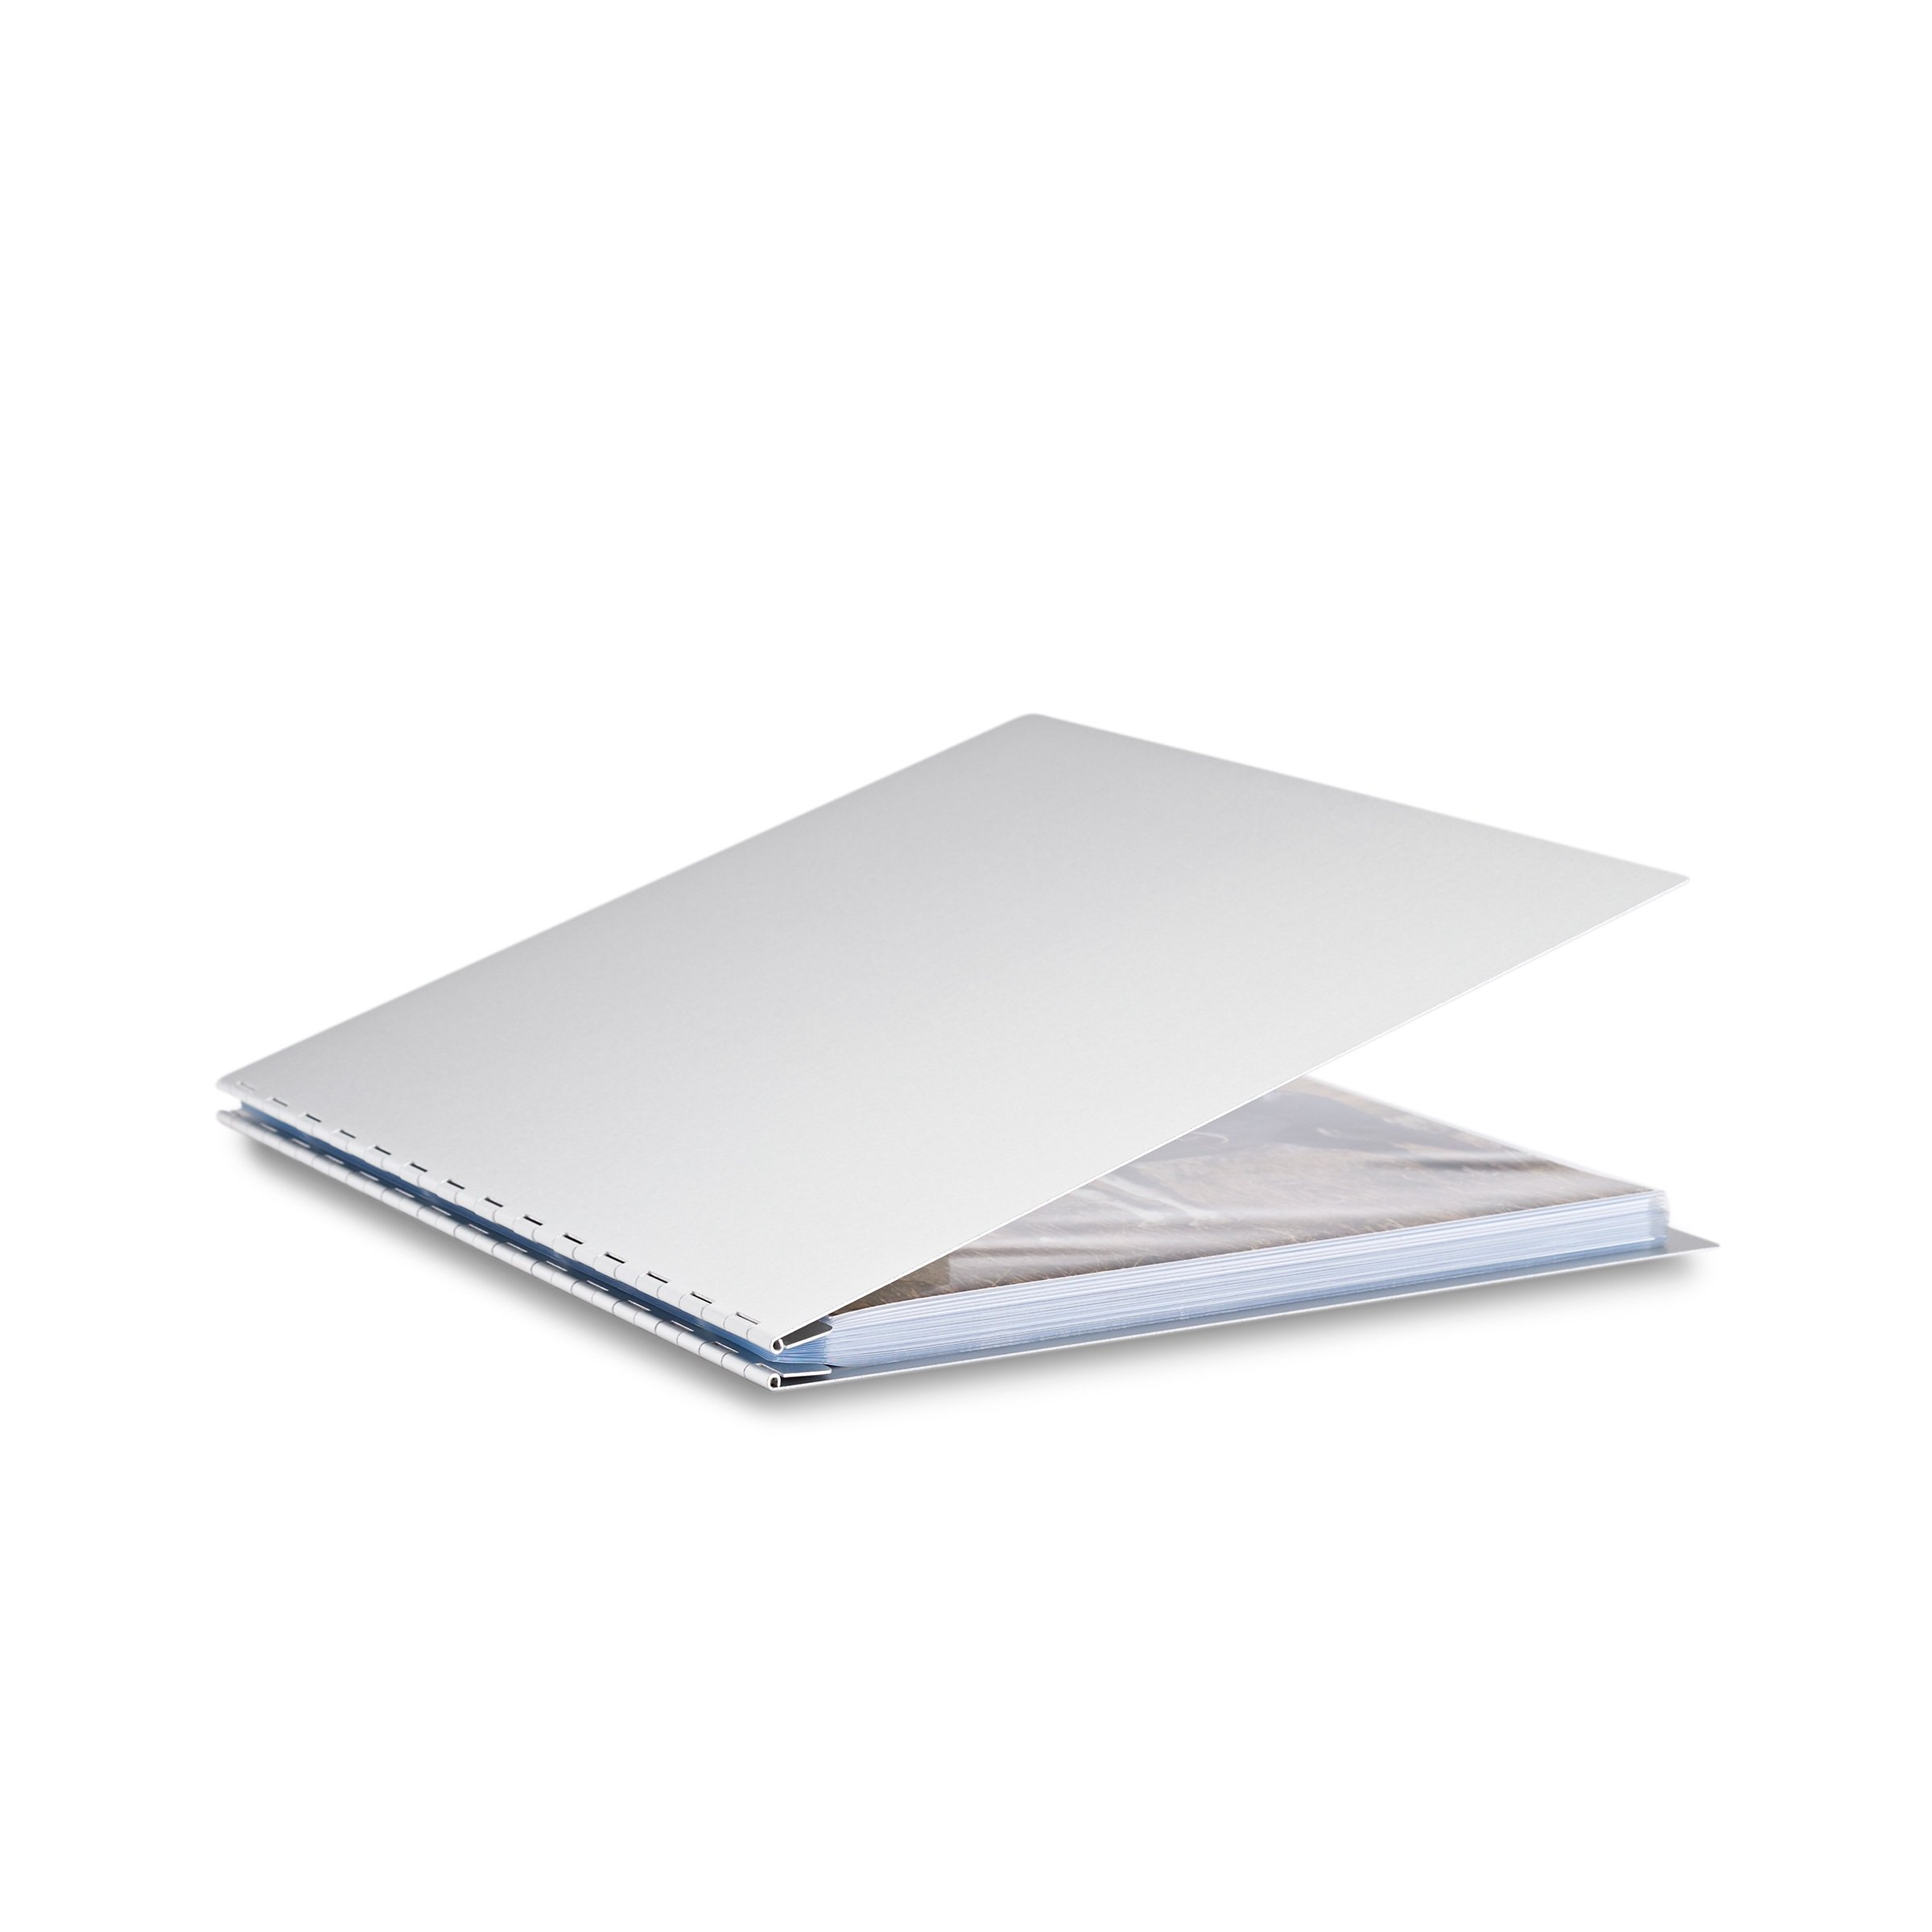 Pina Zangaro Machina Screwpost Binder, 11x14 Portrait, Includes 20 Pro-Archive Sheet Protectors (34047)